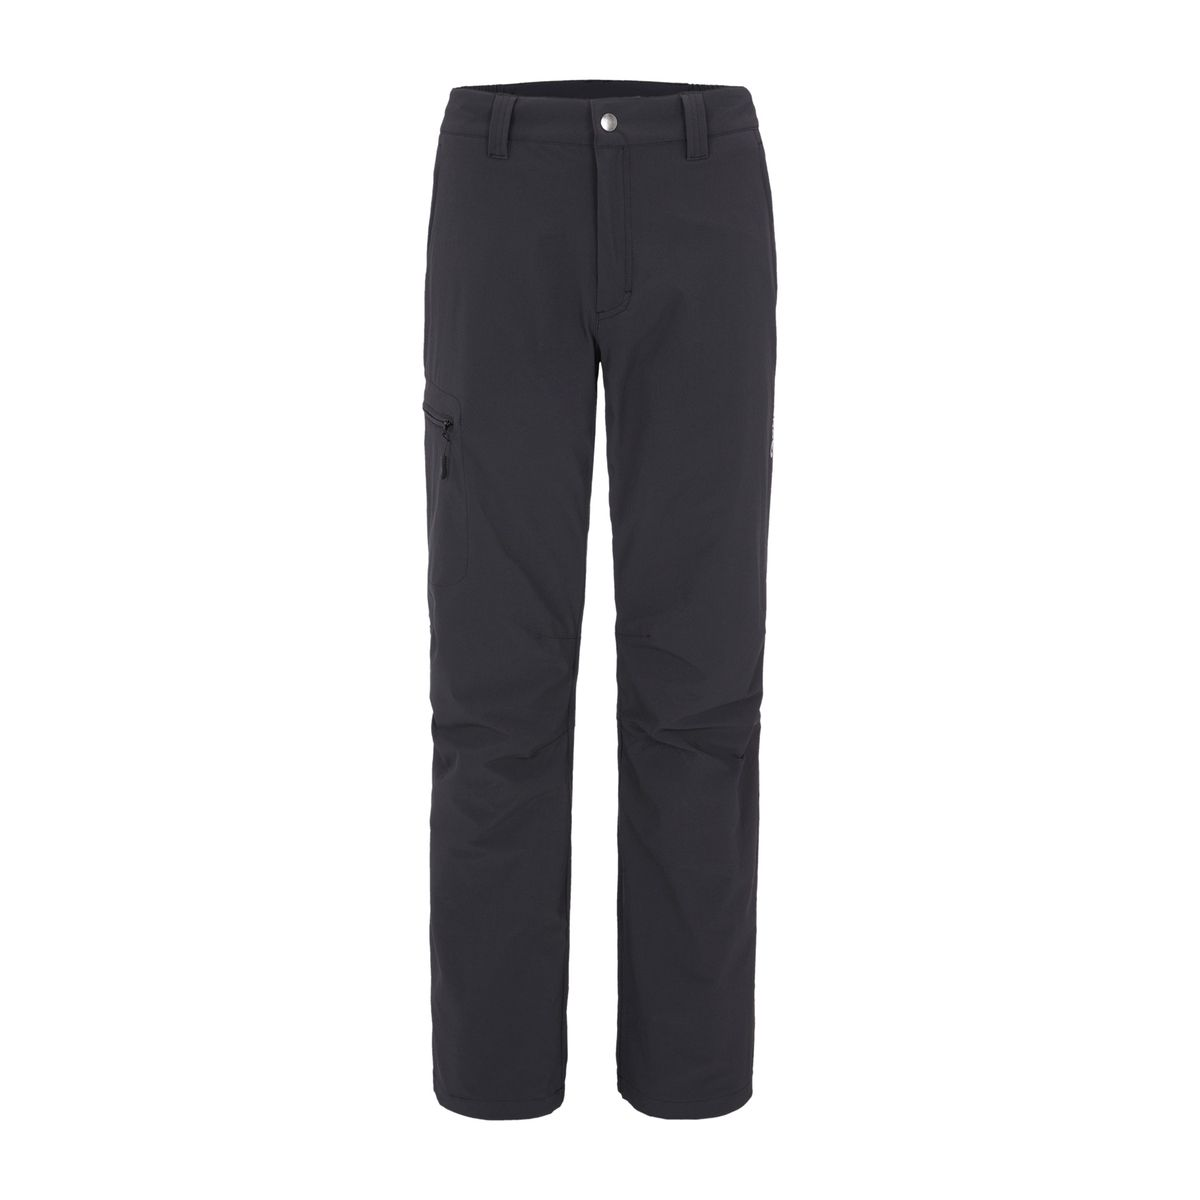 ARNE cycling trousers